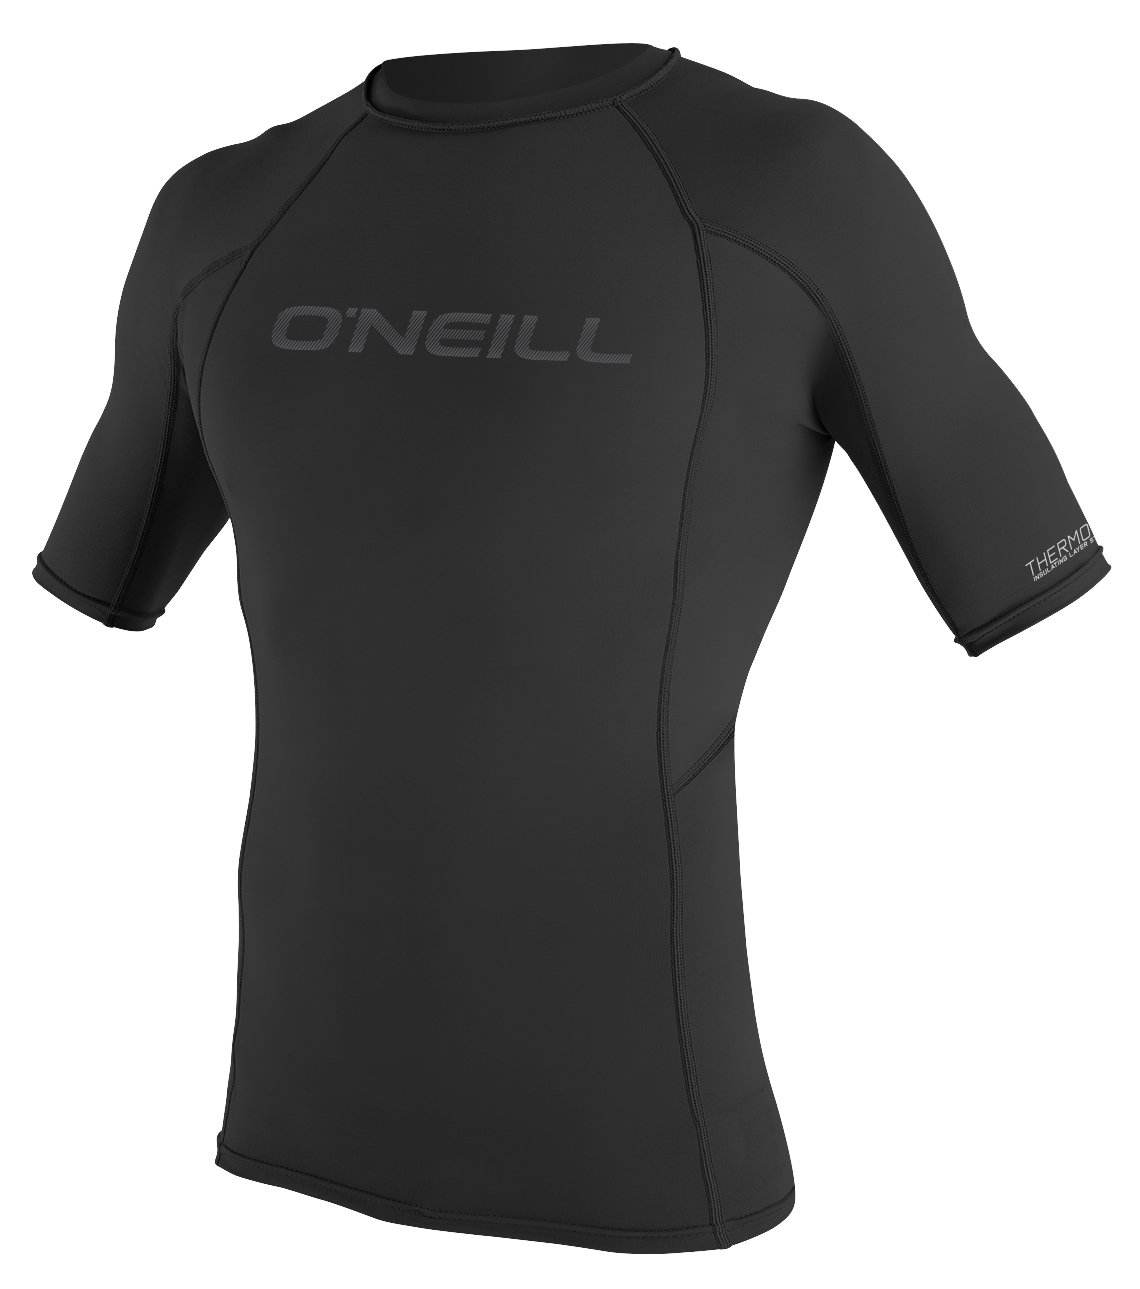 O'Neill Men's Thermo X Short Sleeve Insulative Top, Black, X-Small